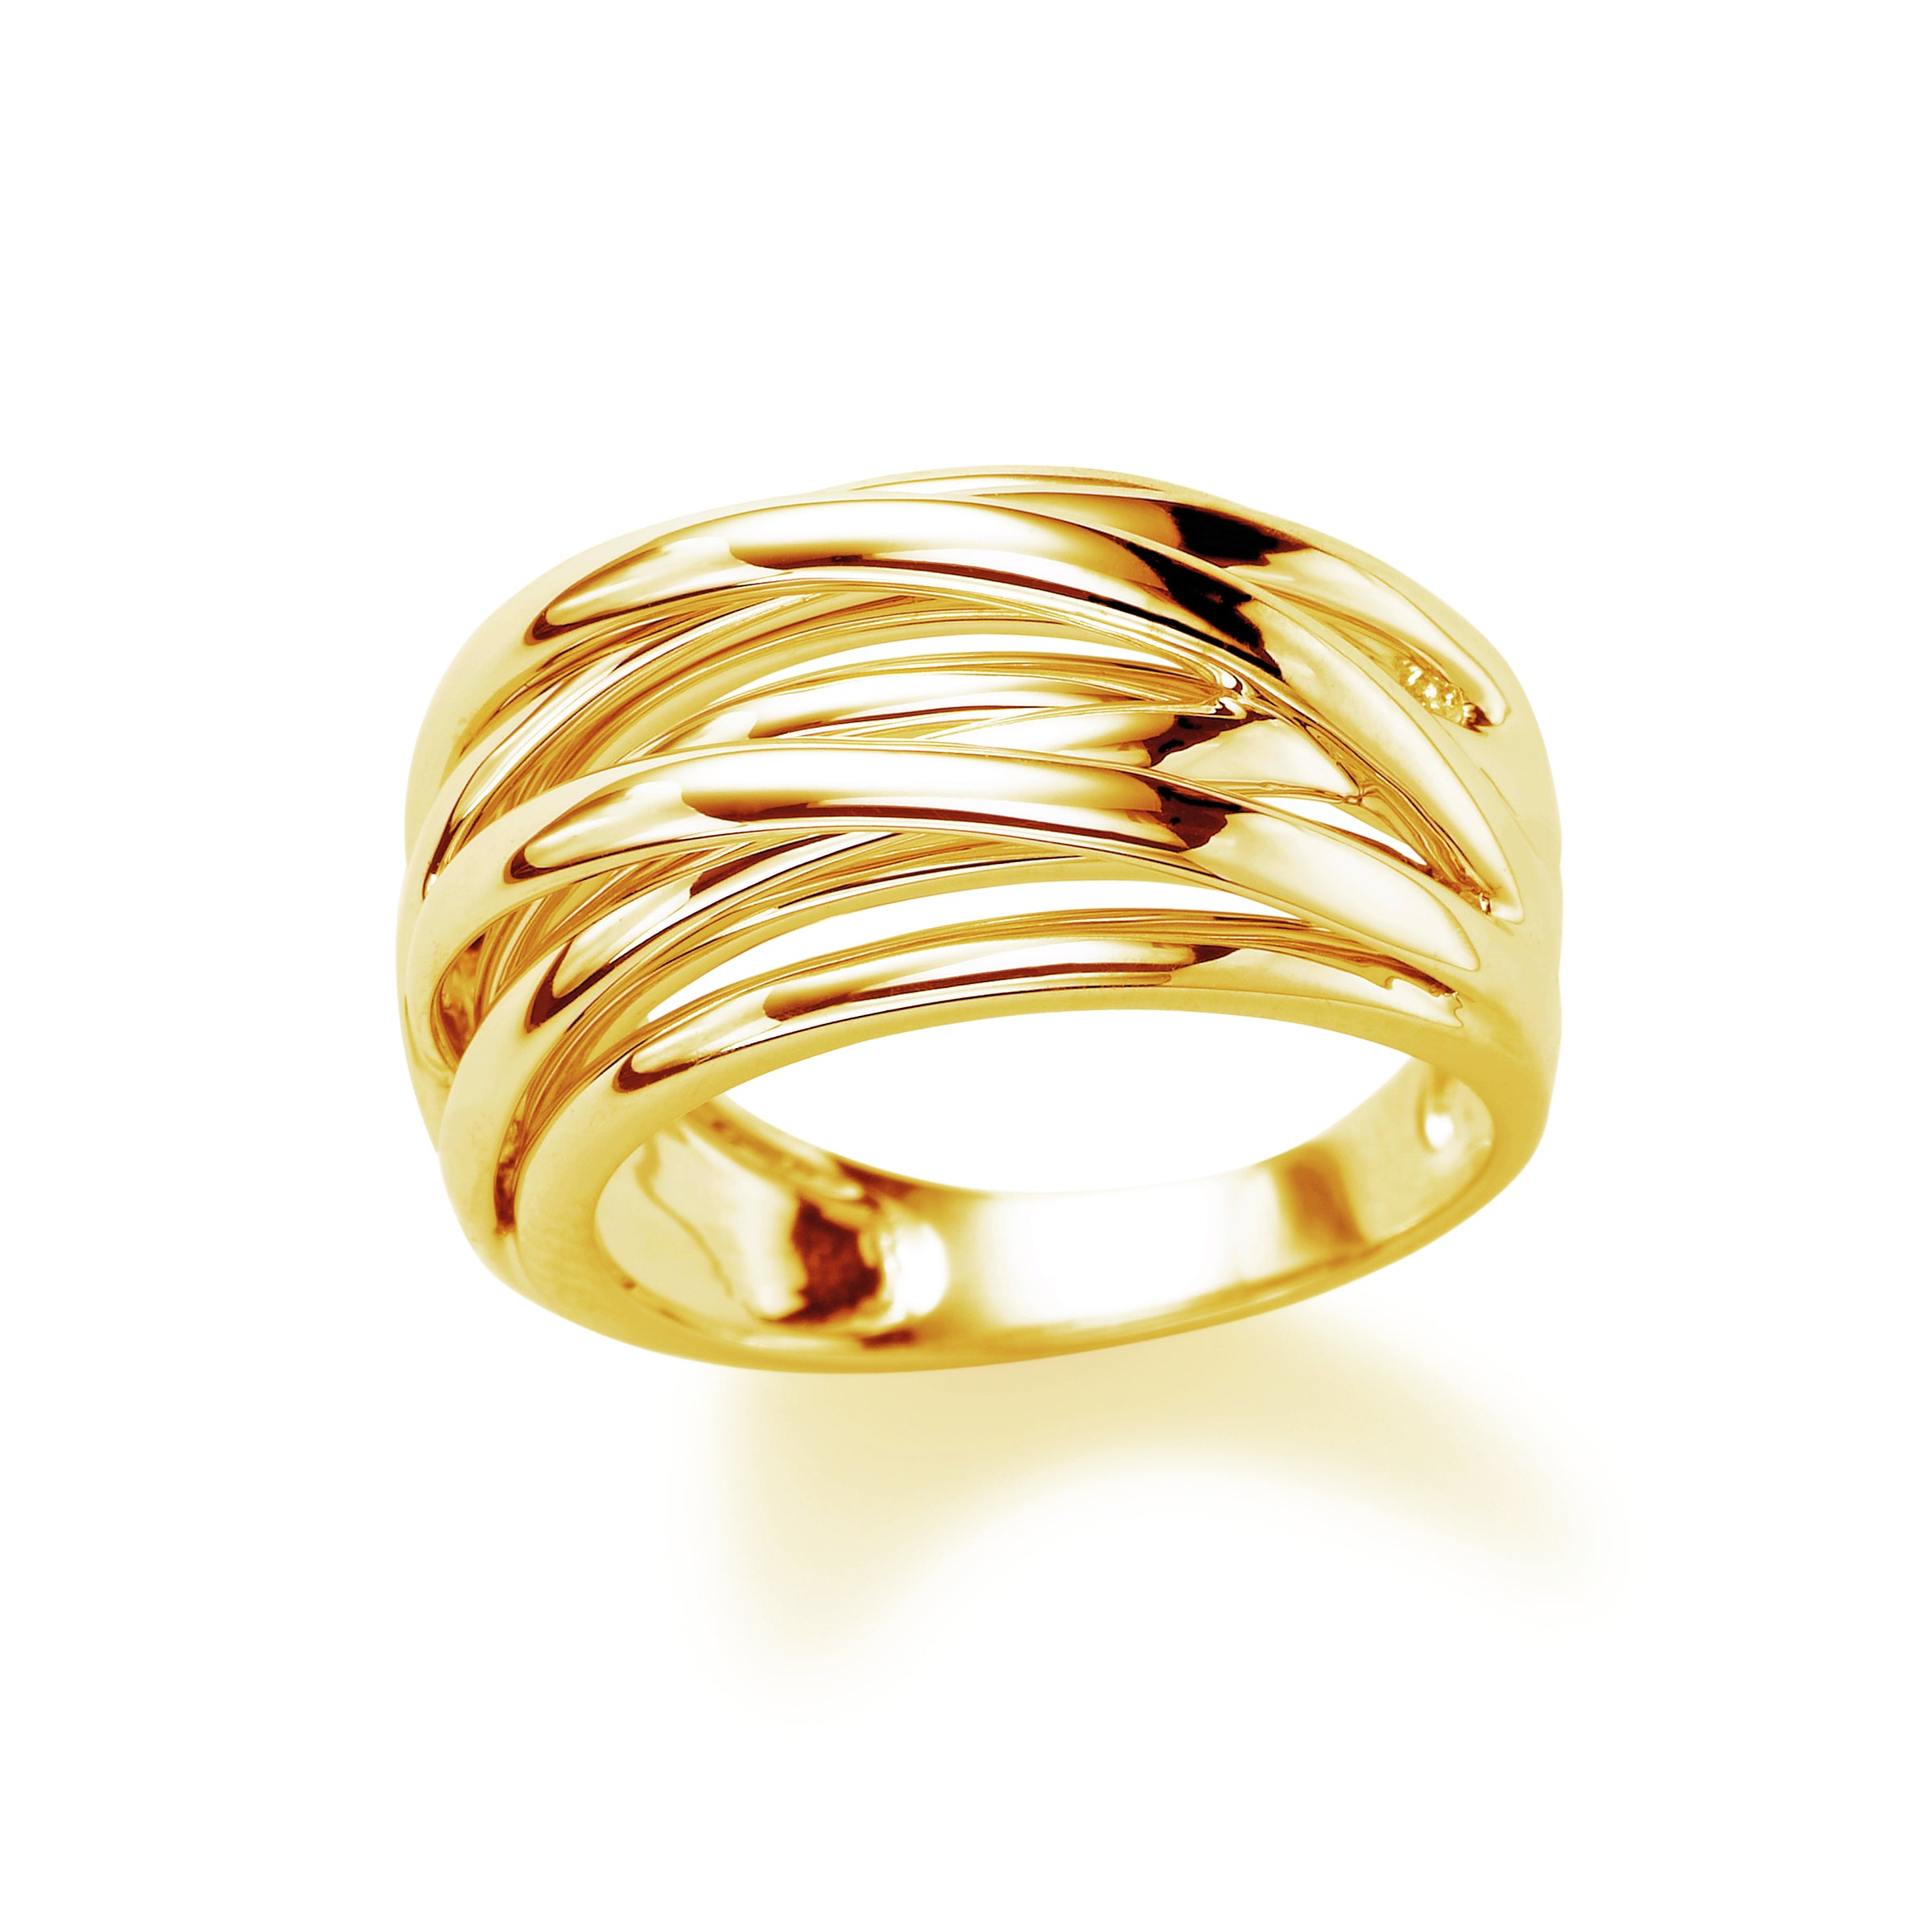 Domed Overlapping Strands Ring, 14K Yellow Gold